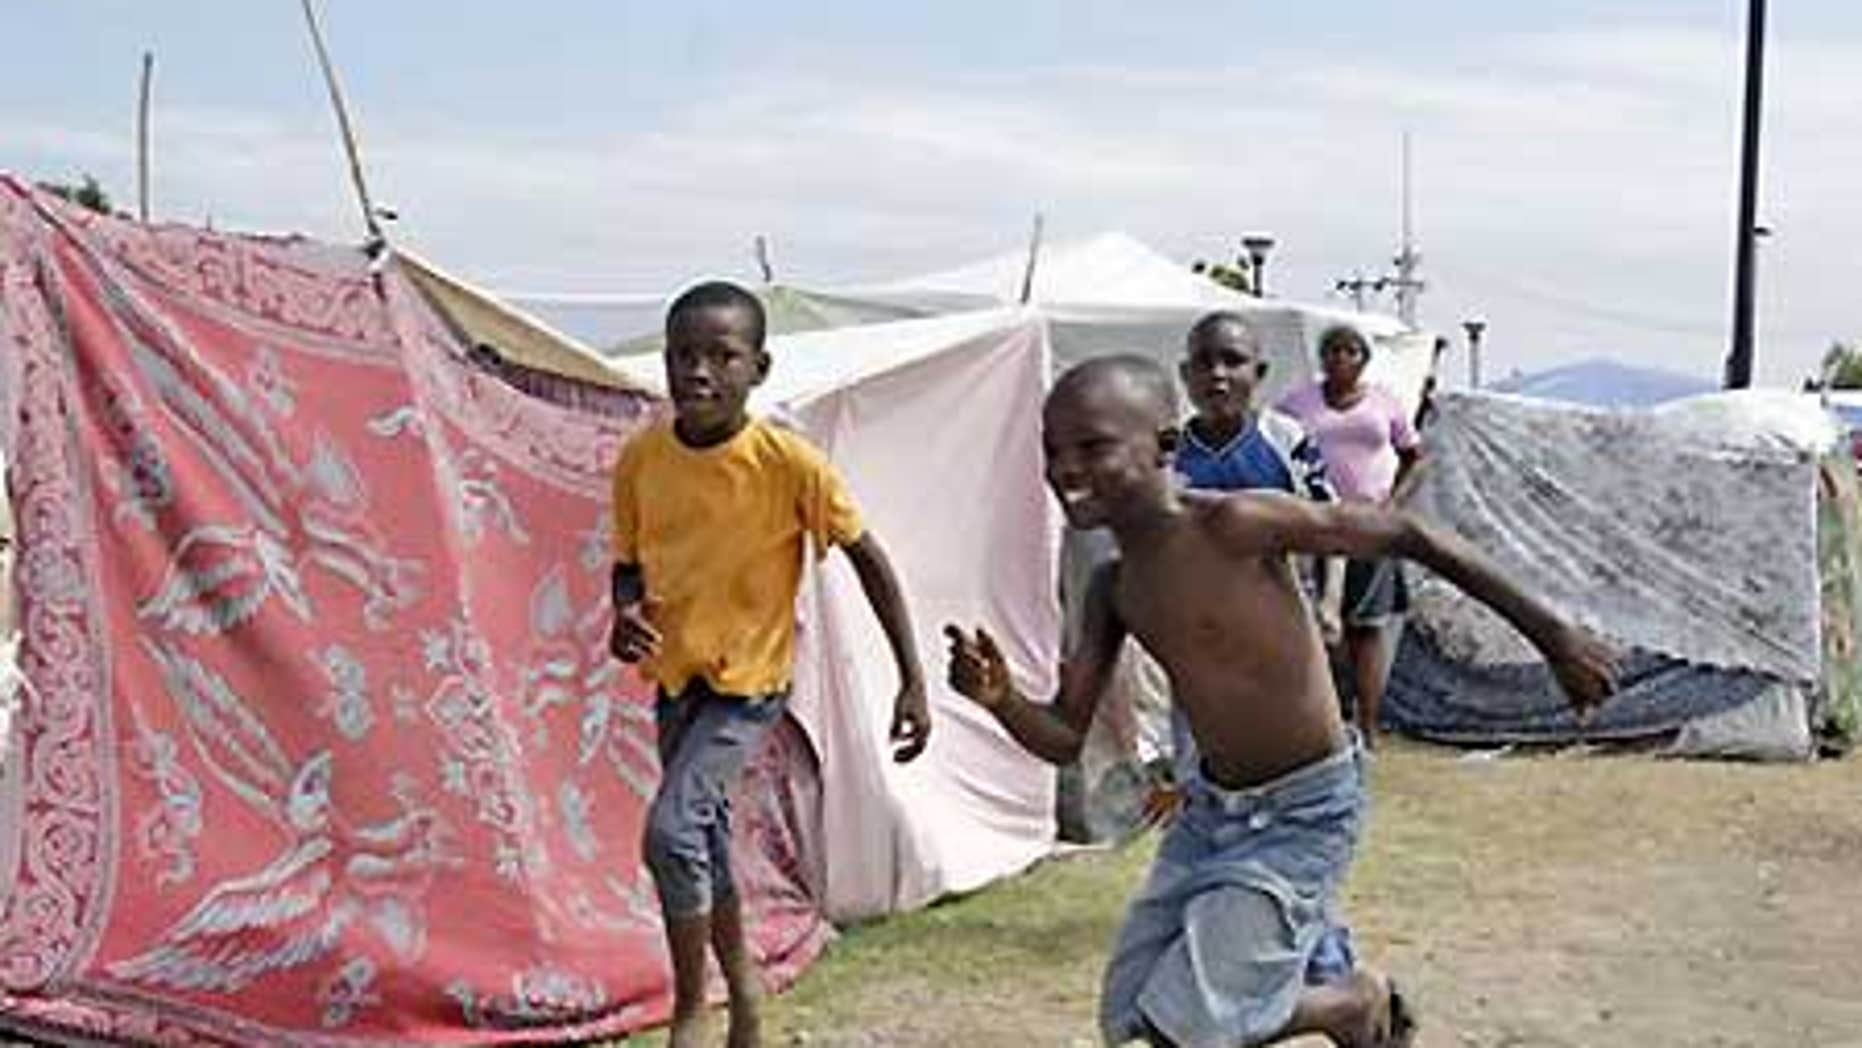 Jan. 26: Boys play in a tent city called Mais Gate near Port au Prince airport.